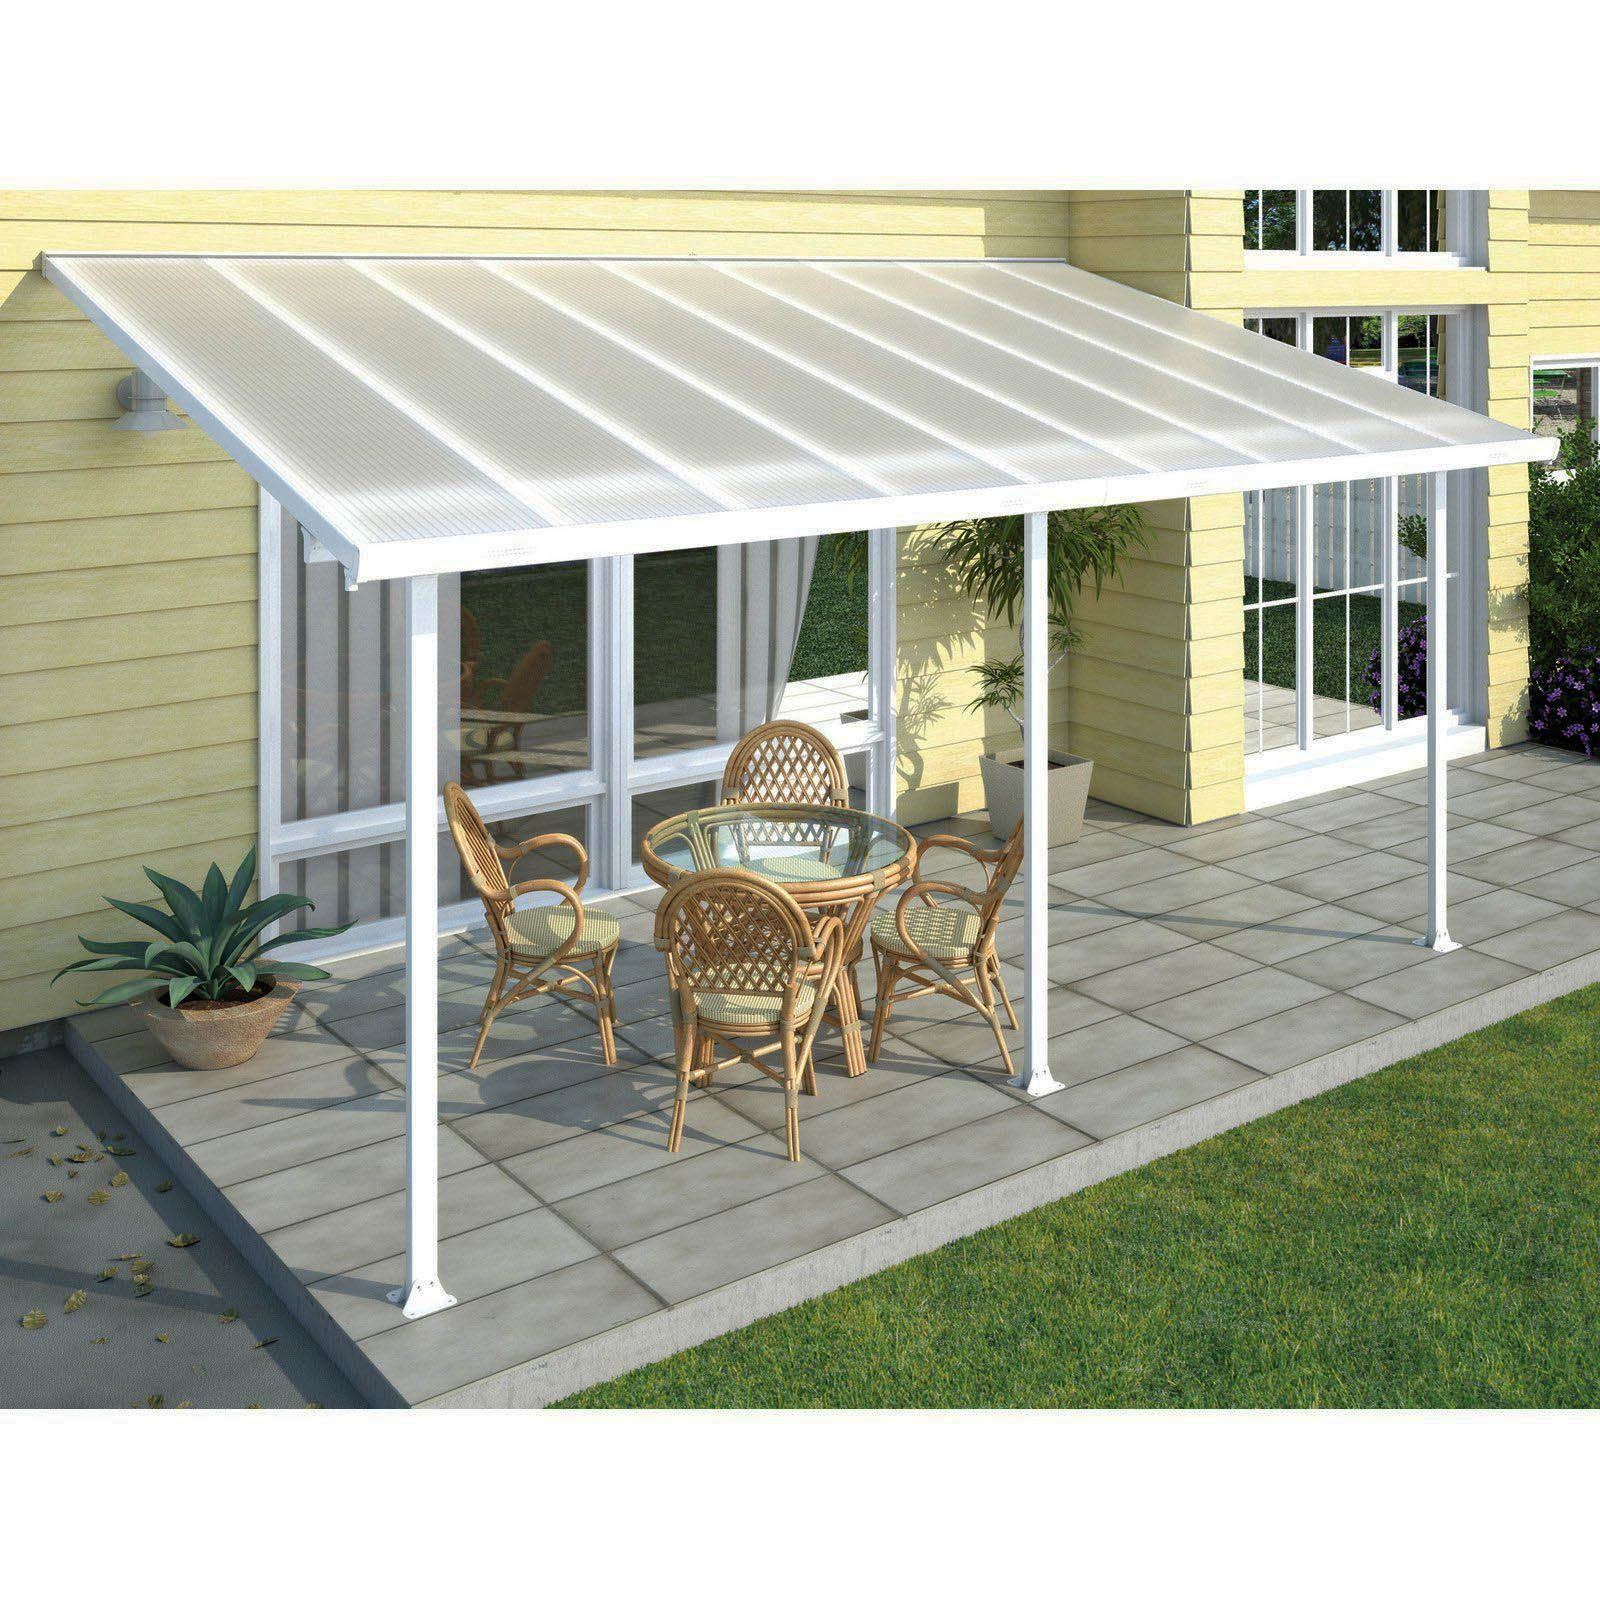 Covered Pergola Designs Nz: Ways To Decorate A Outdoor Covered Patio Ideas Nz Only In